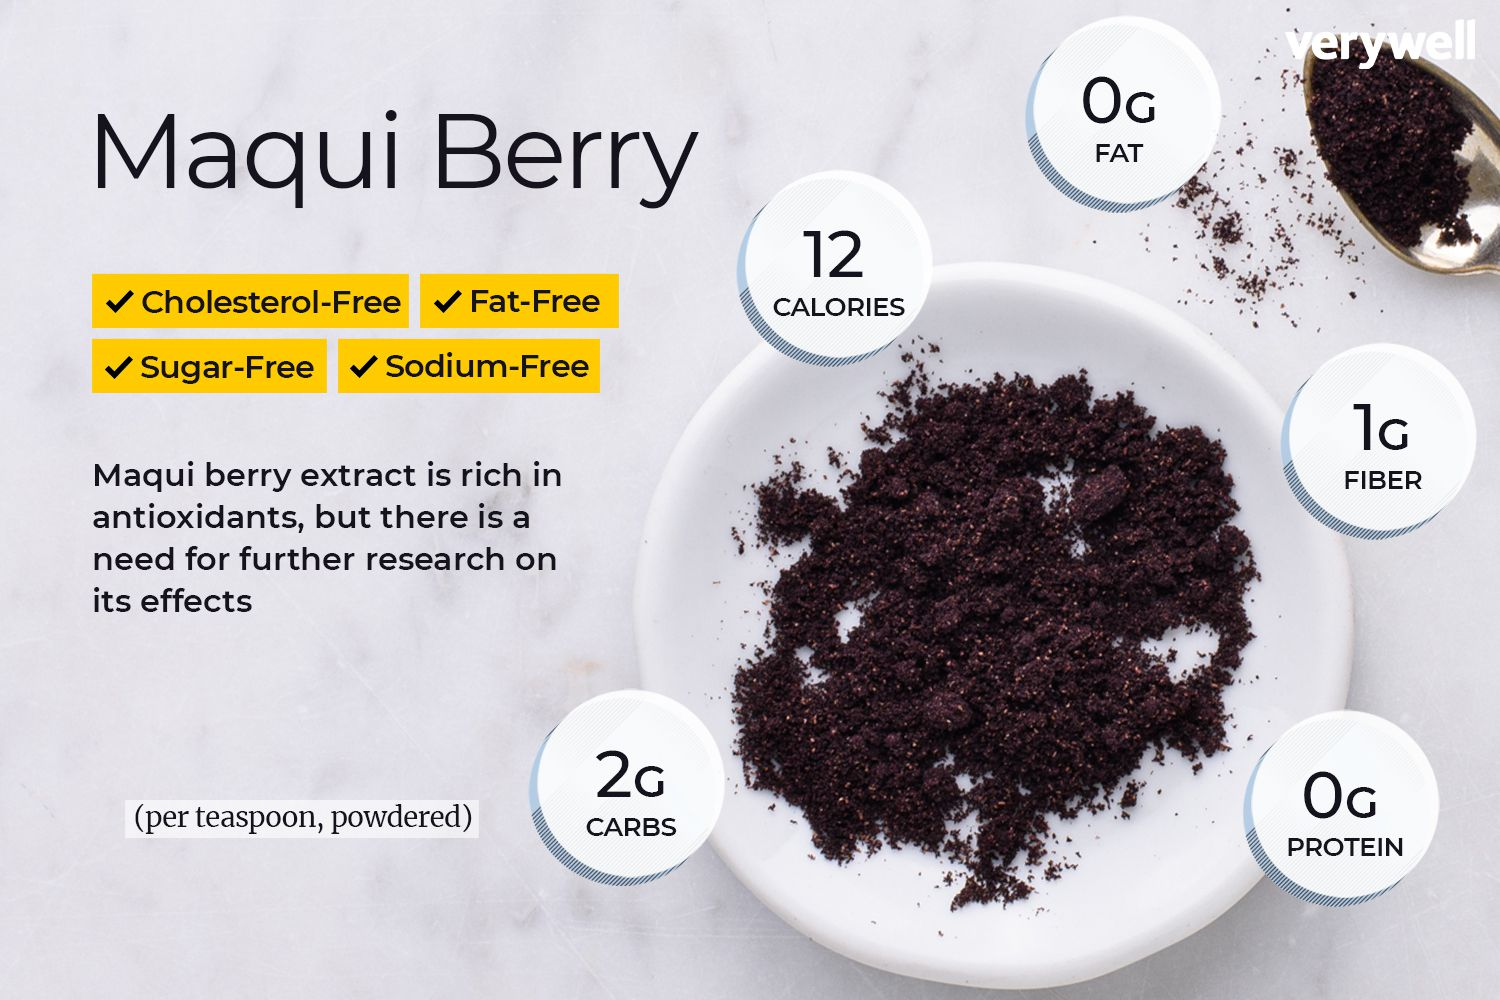 is maqui berry good for dry eyes